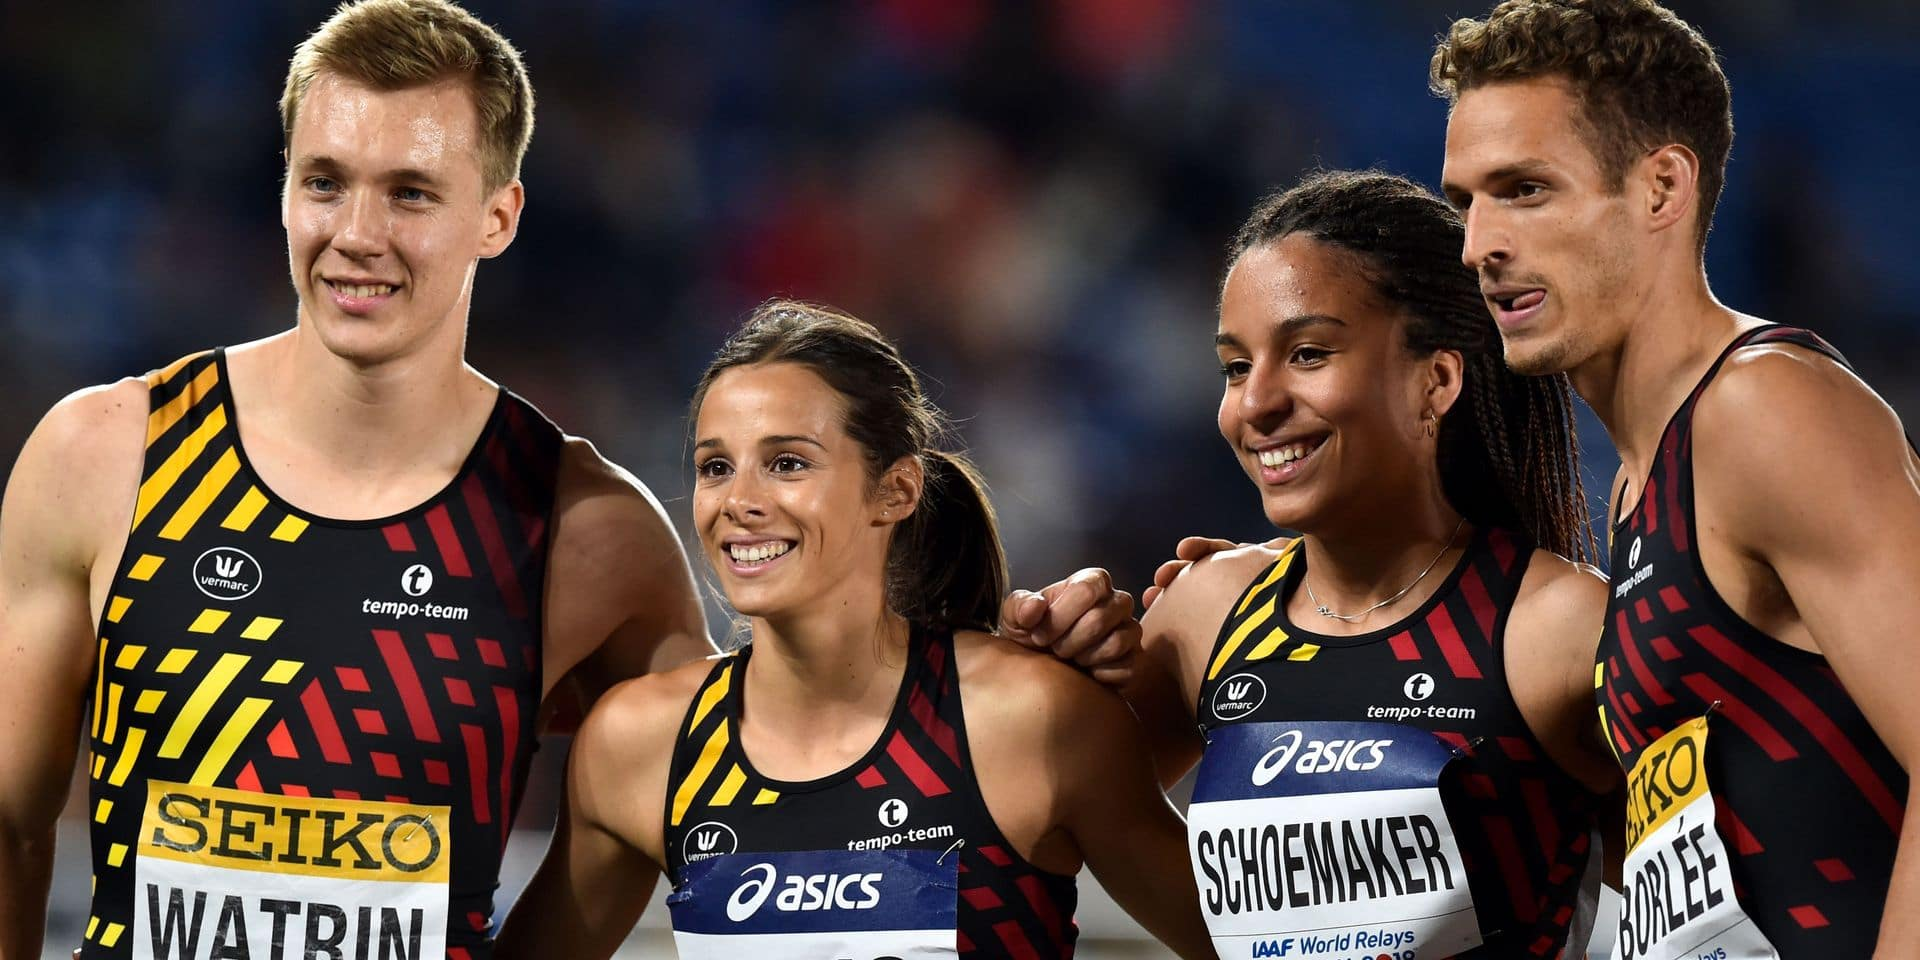 Julien Watrin (L), Camille Laus (2L), Liefde Schoemaker (2R), and Dylan Borlee (R) of Belgium pose after their competition of the mixed 4x400 metres relay at the IAAF World Relays athletics event at Nissan Stadium in Yokohama on May 11, 2019. (Photo by Kazuhiro NOGI / AFP)